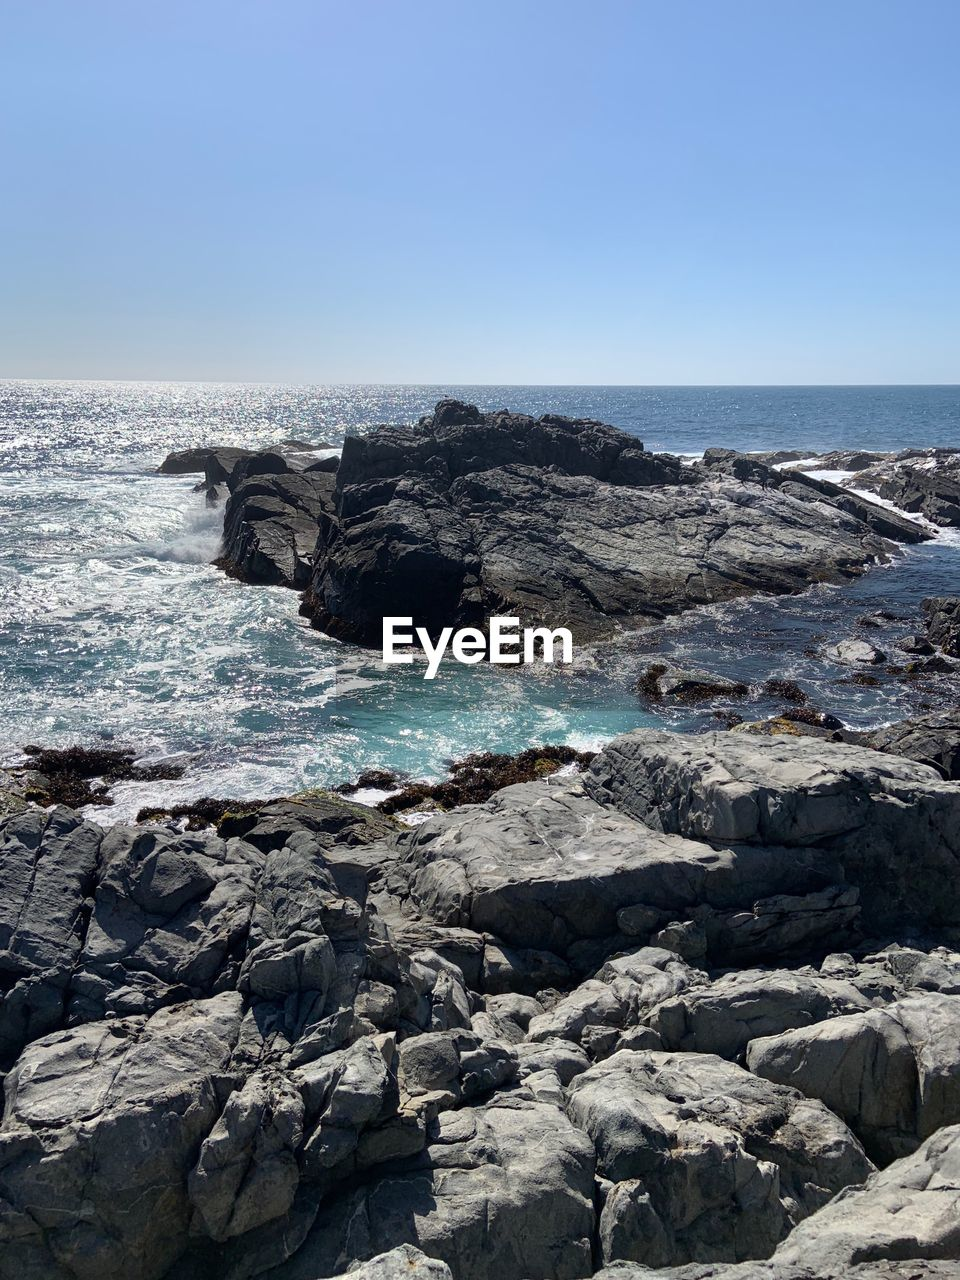 sea, rock, water, rock - object, sky, solid, beauty in nature, horizon, clear sky, land, horizon over water, beach, scenics - nature, nature, no people, day, tranquility, motion, tranquil scene, outdoors, rocky coastline